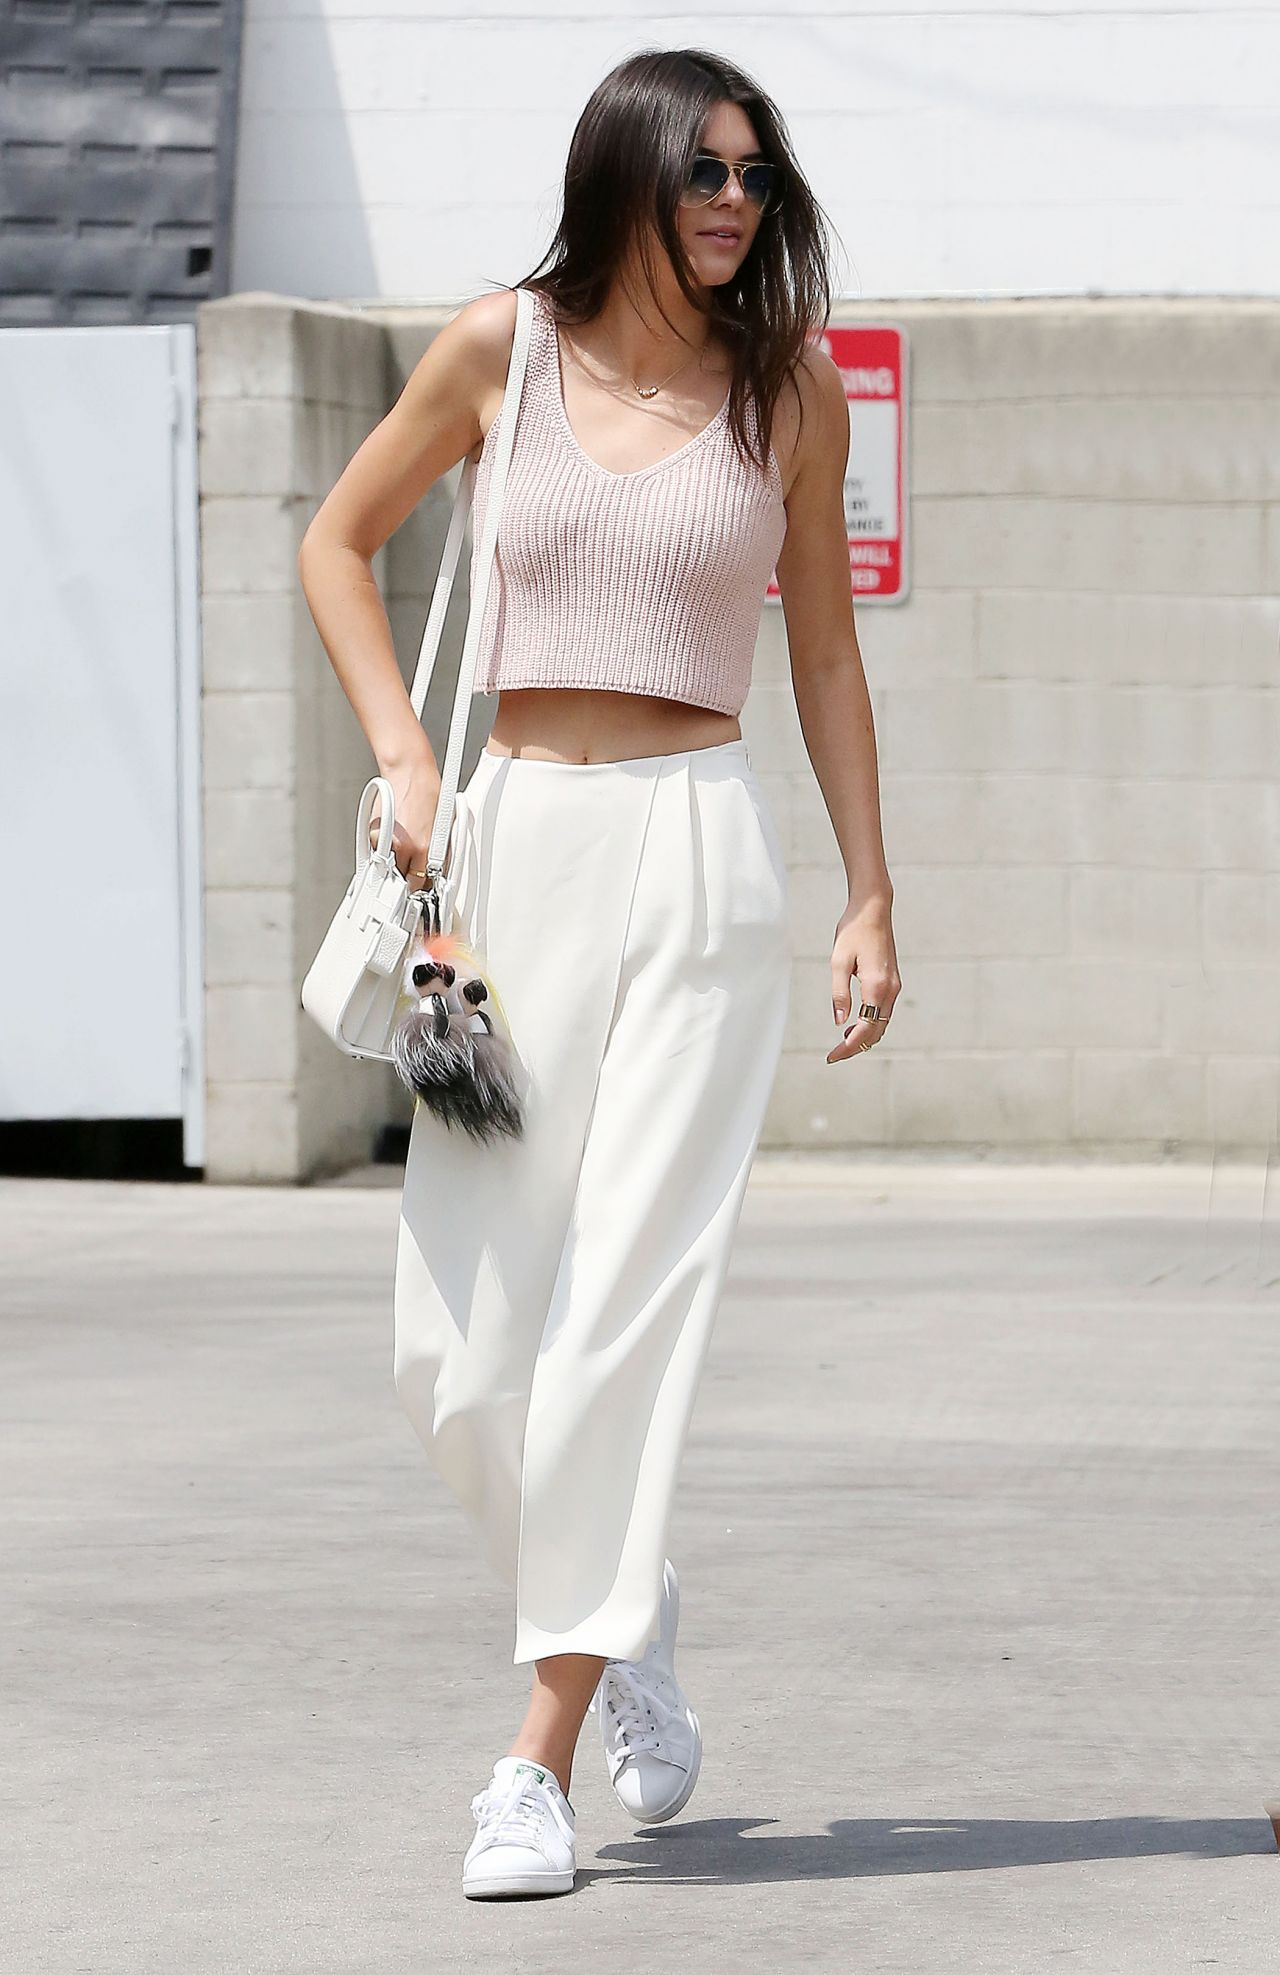 Kendall Jenner Casual Style Out In La April 2015